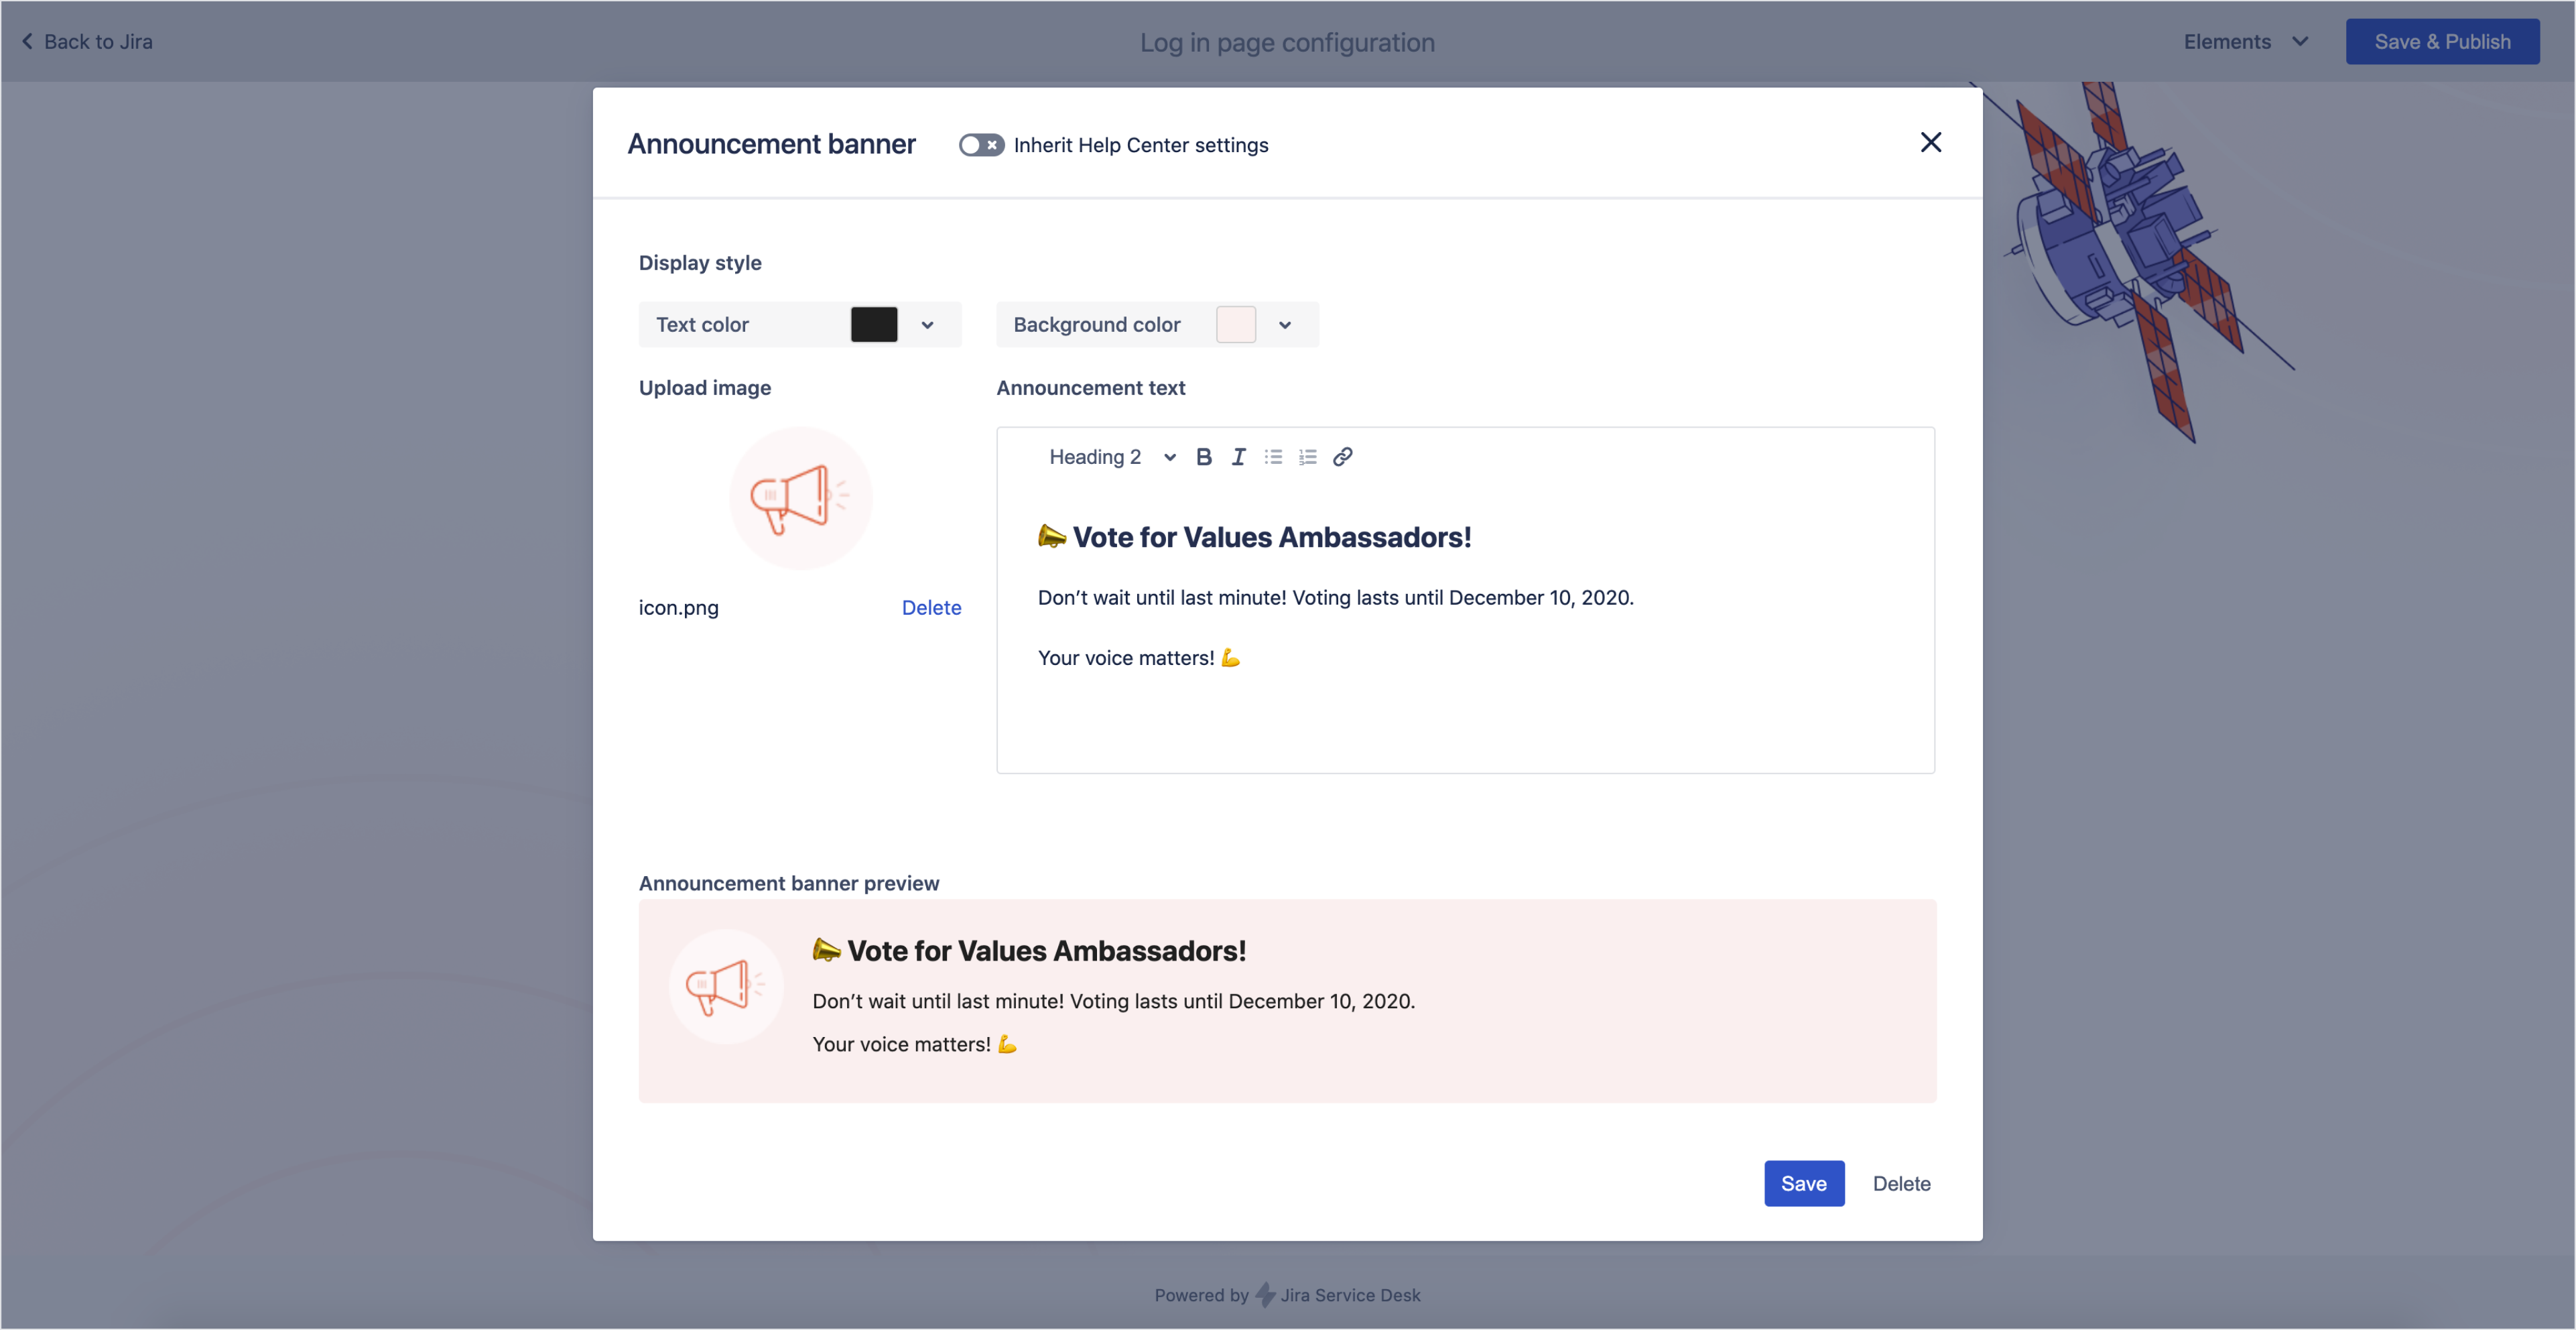 Login screen: Announcement banner settings in Theme Extension for Jira Service Management